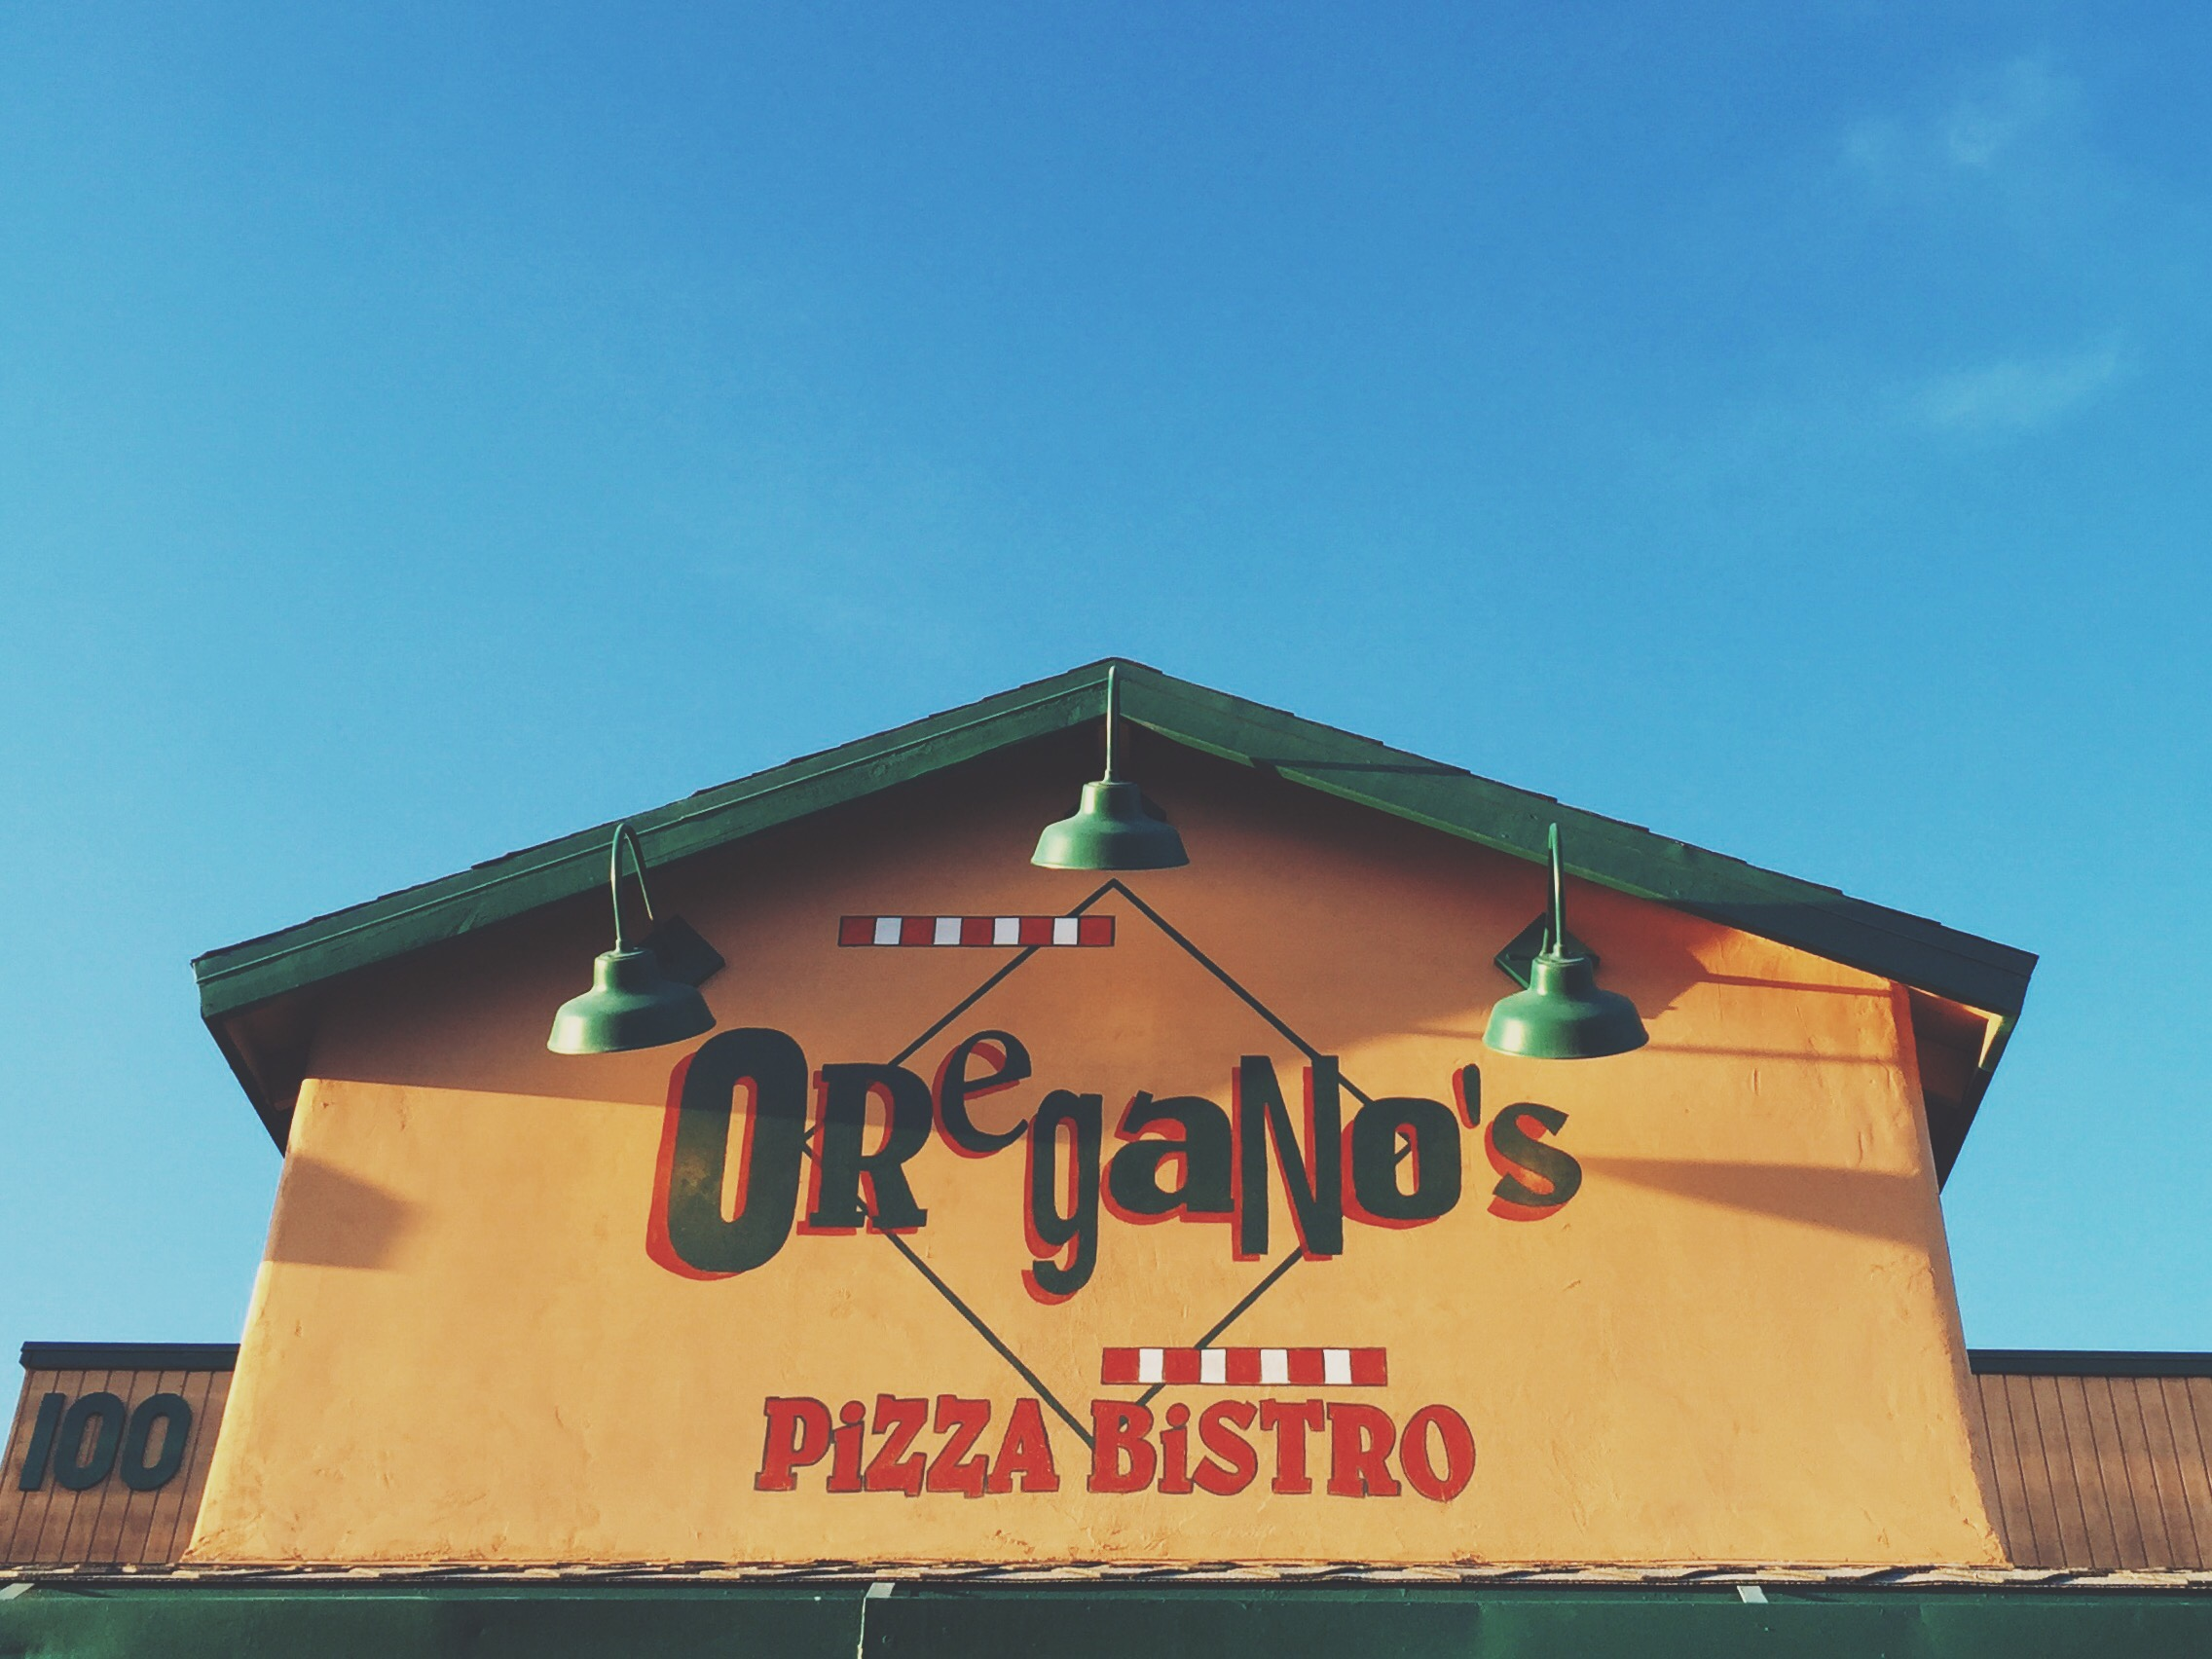 Oregano's North Tucson